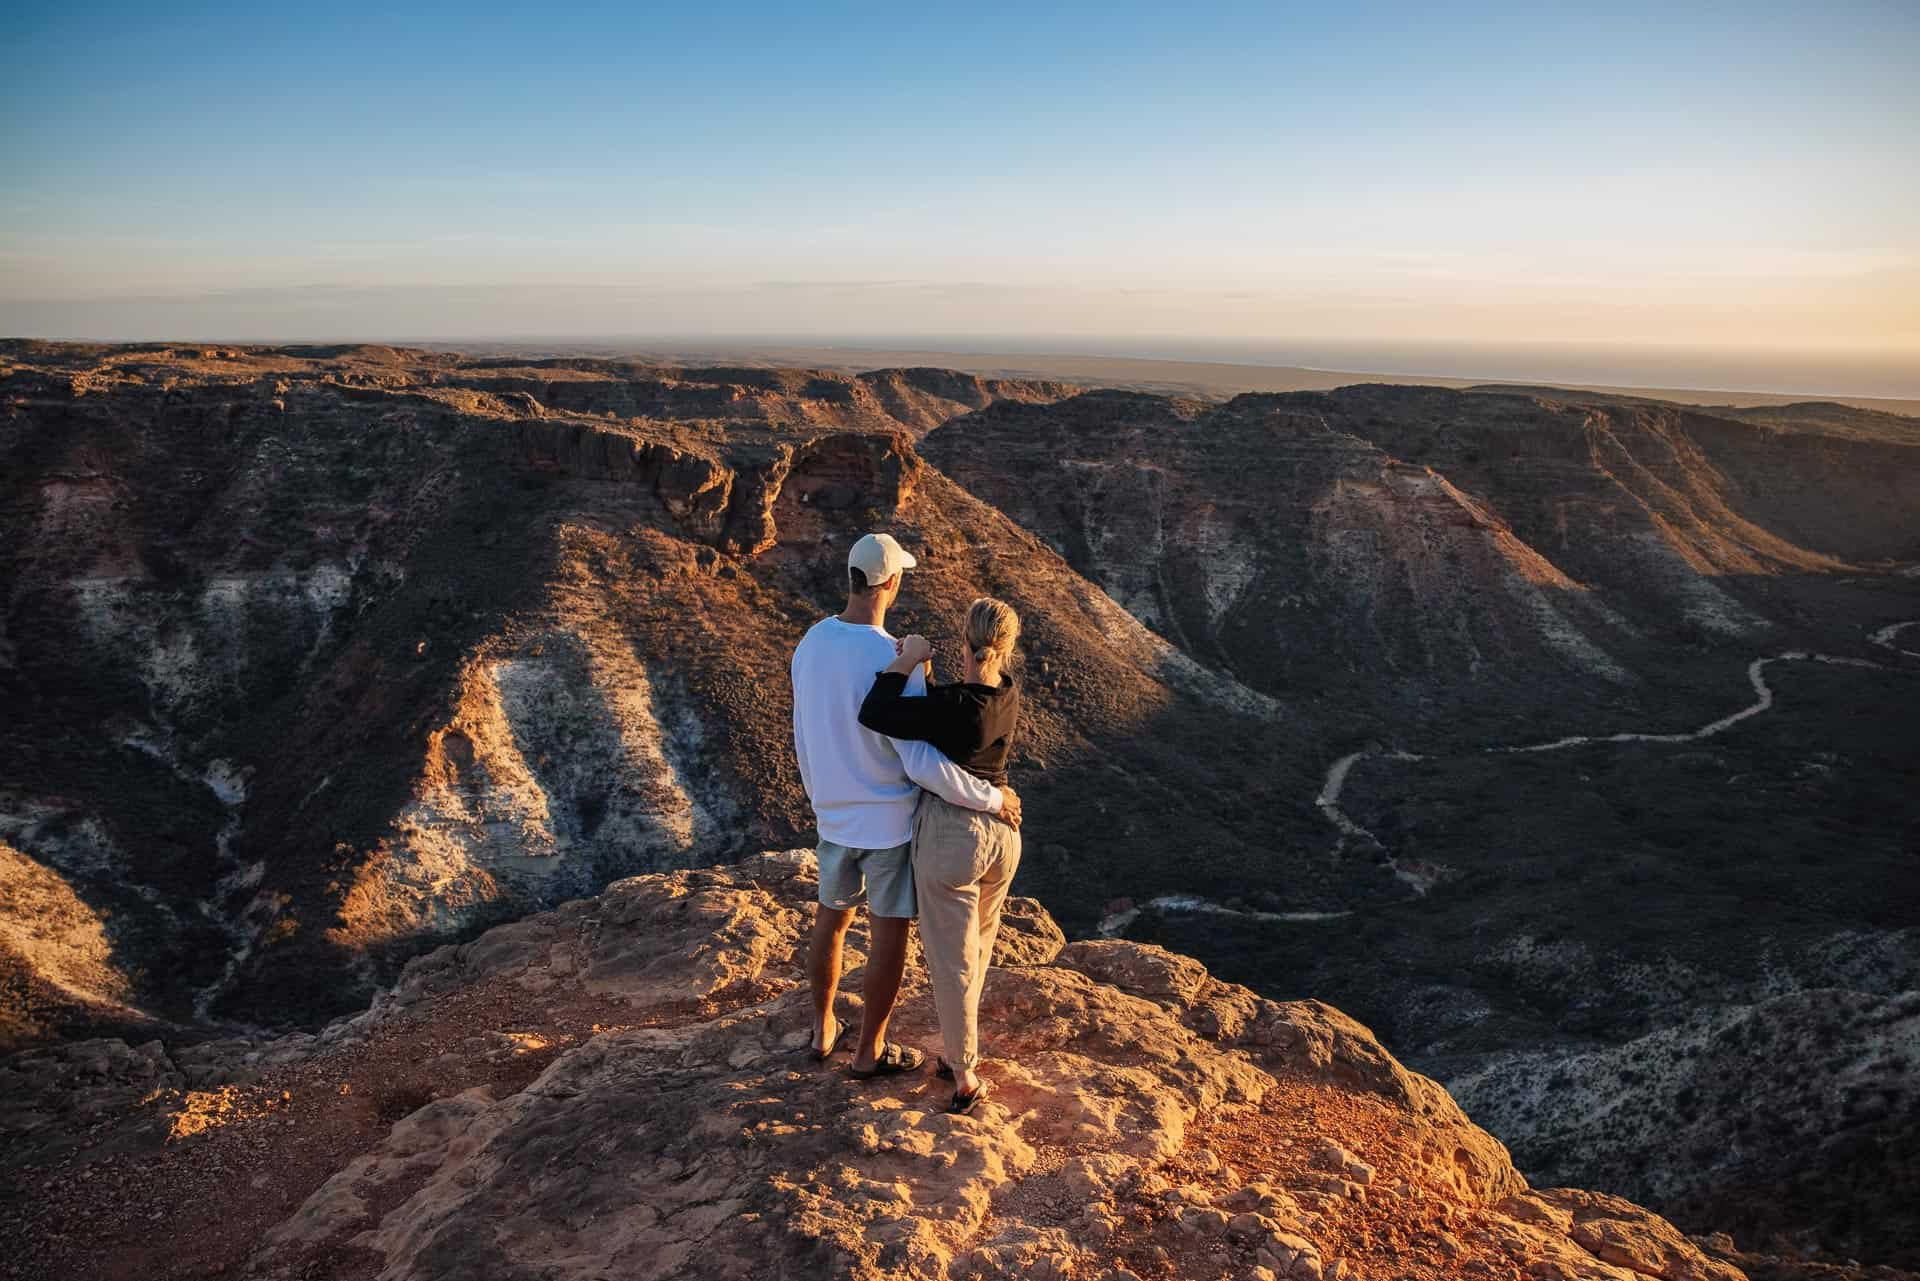 charles knife canyon, things to do in exmouth, exmouth western australia, what to do in exmouth, exmouth things to do